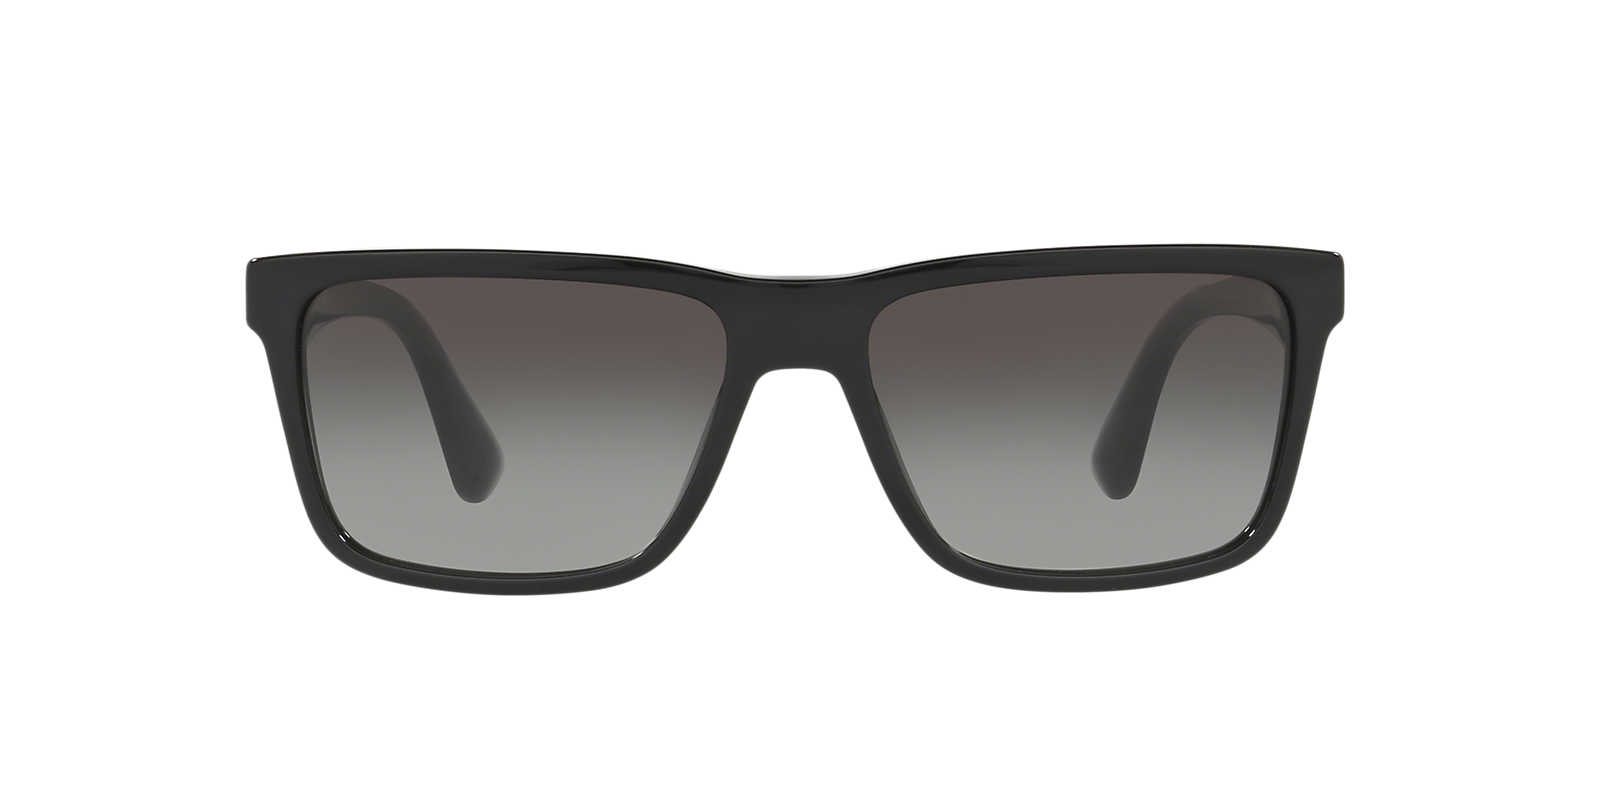 Prada Glasses For Mens